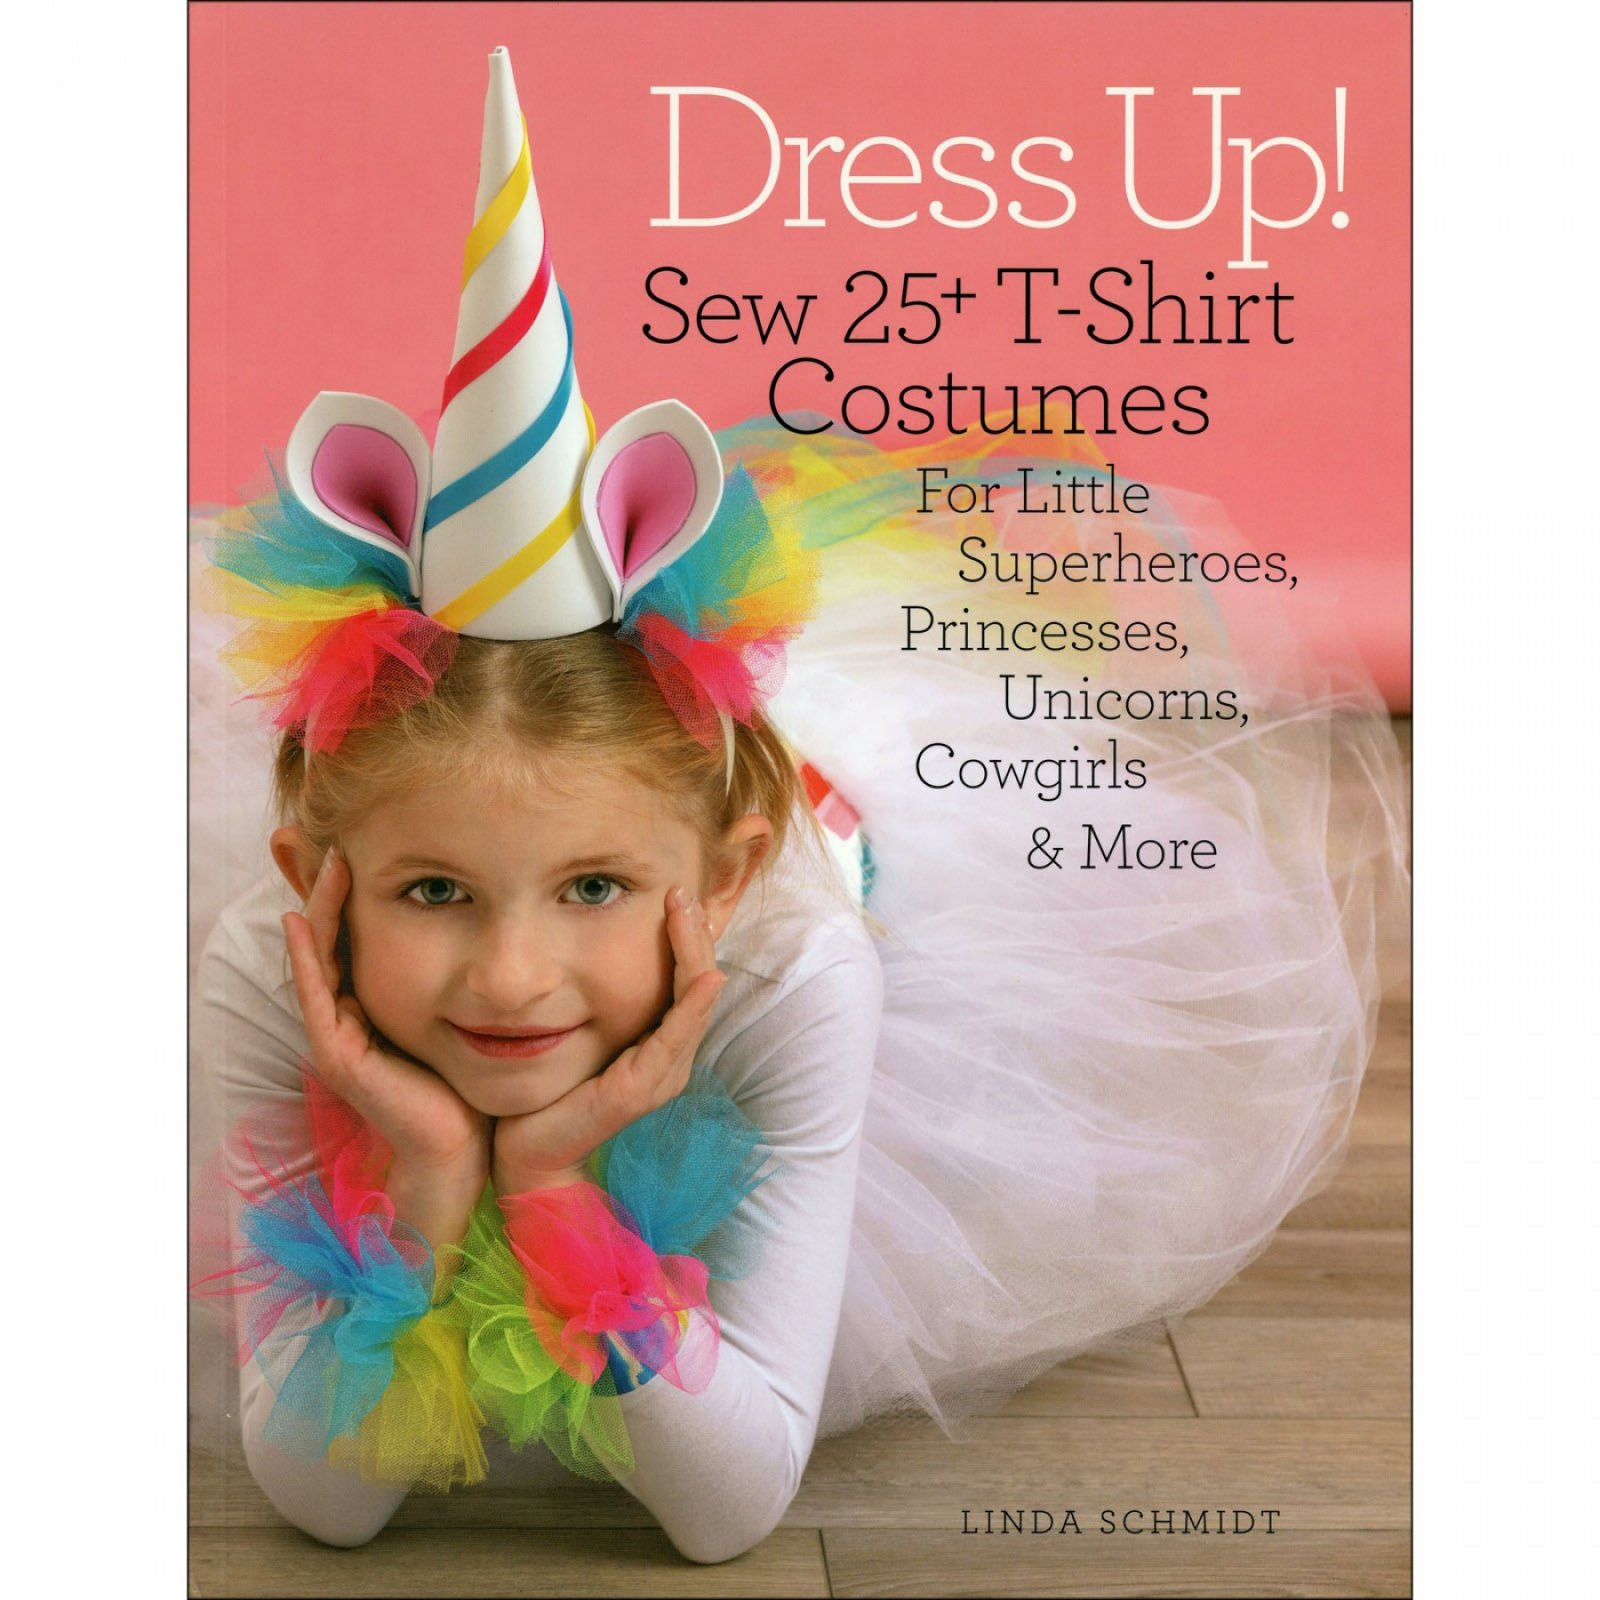 Dress Up! Sew 25+ T-shirt Costumes